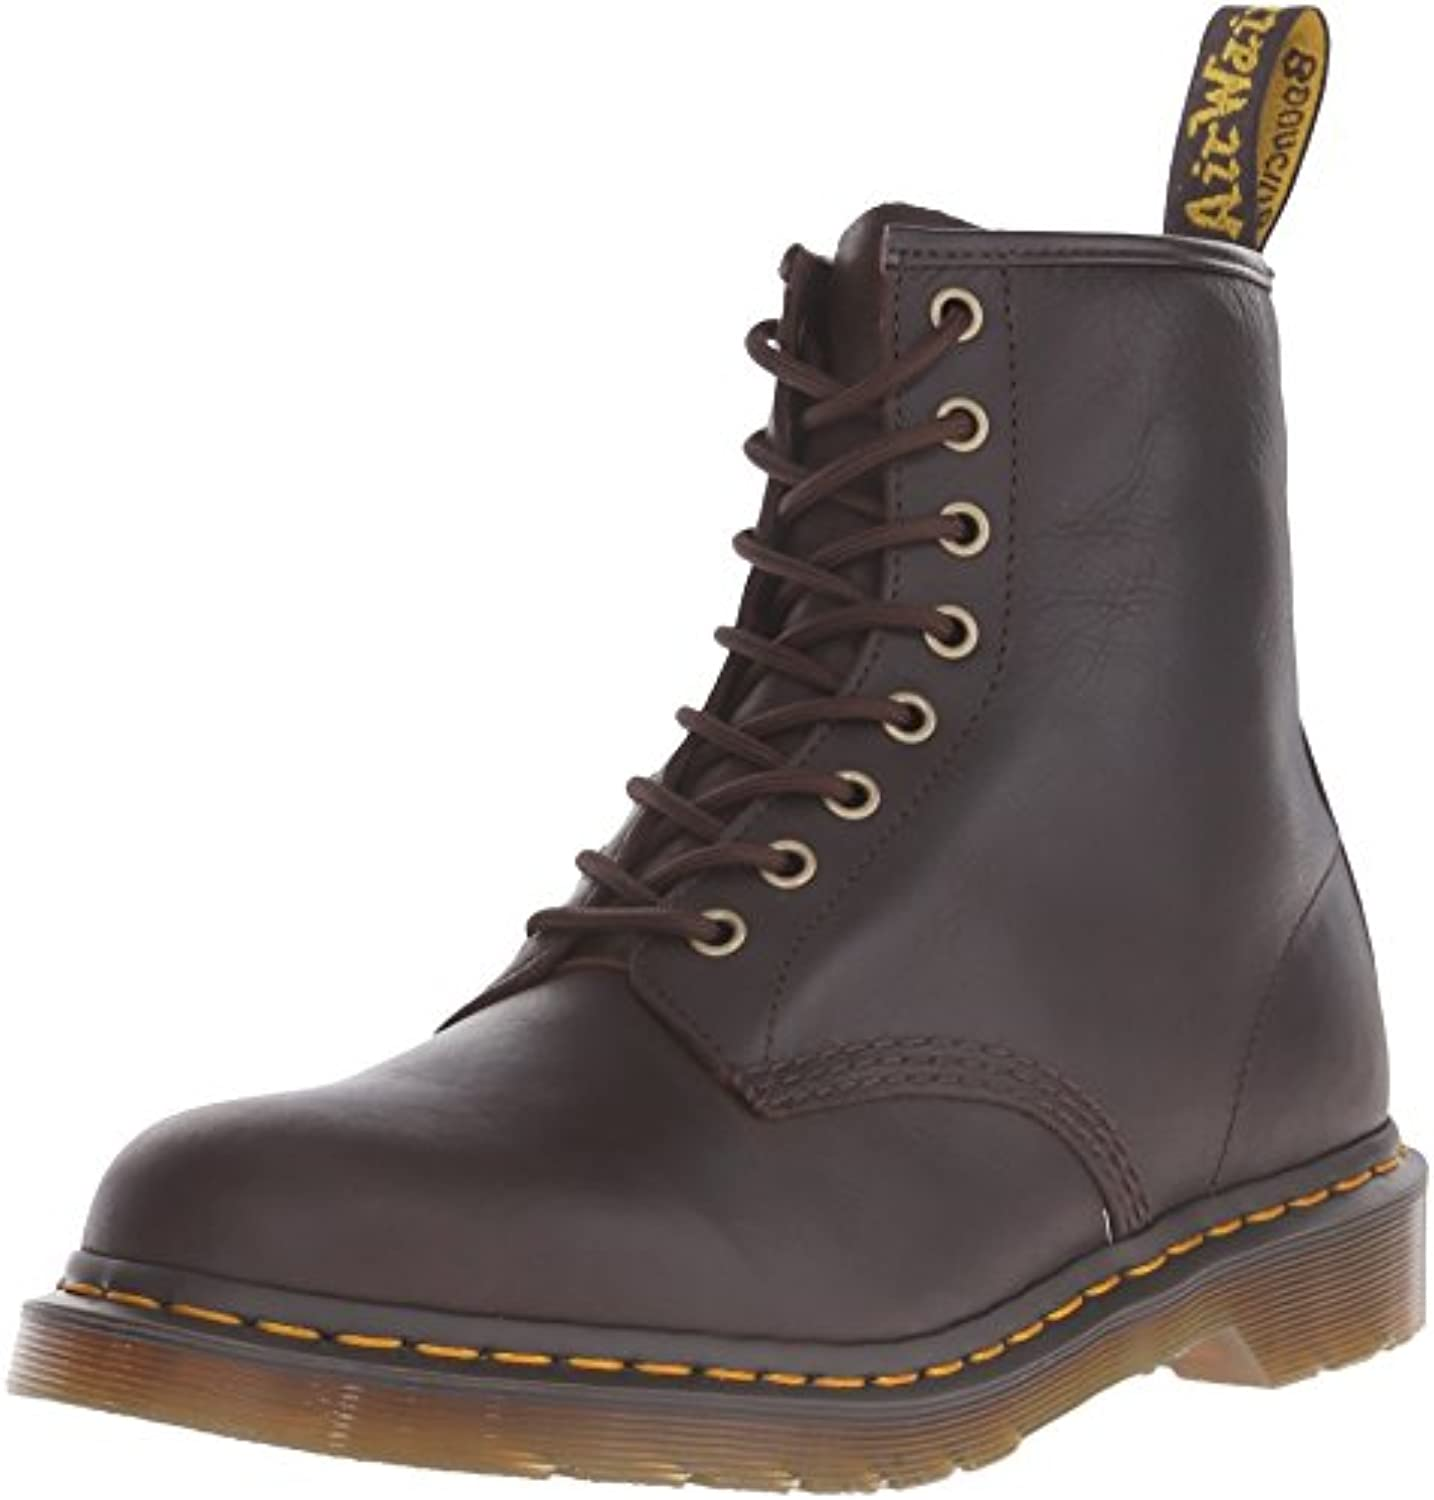 Dr.Martens Womens 1460 8 Eyelet Carpathian Leather Boots